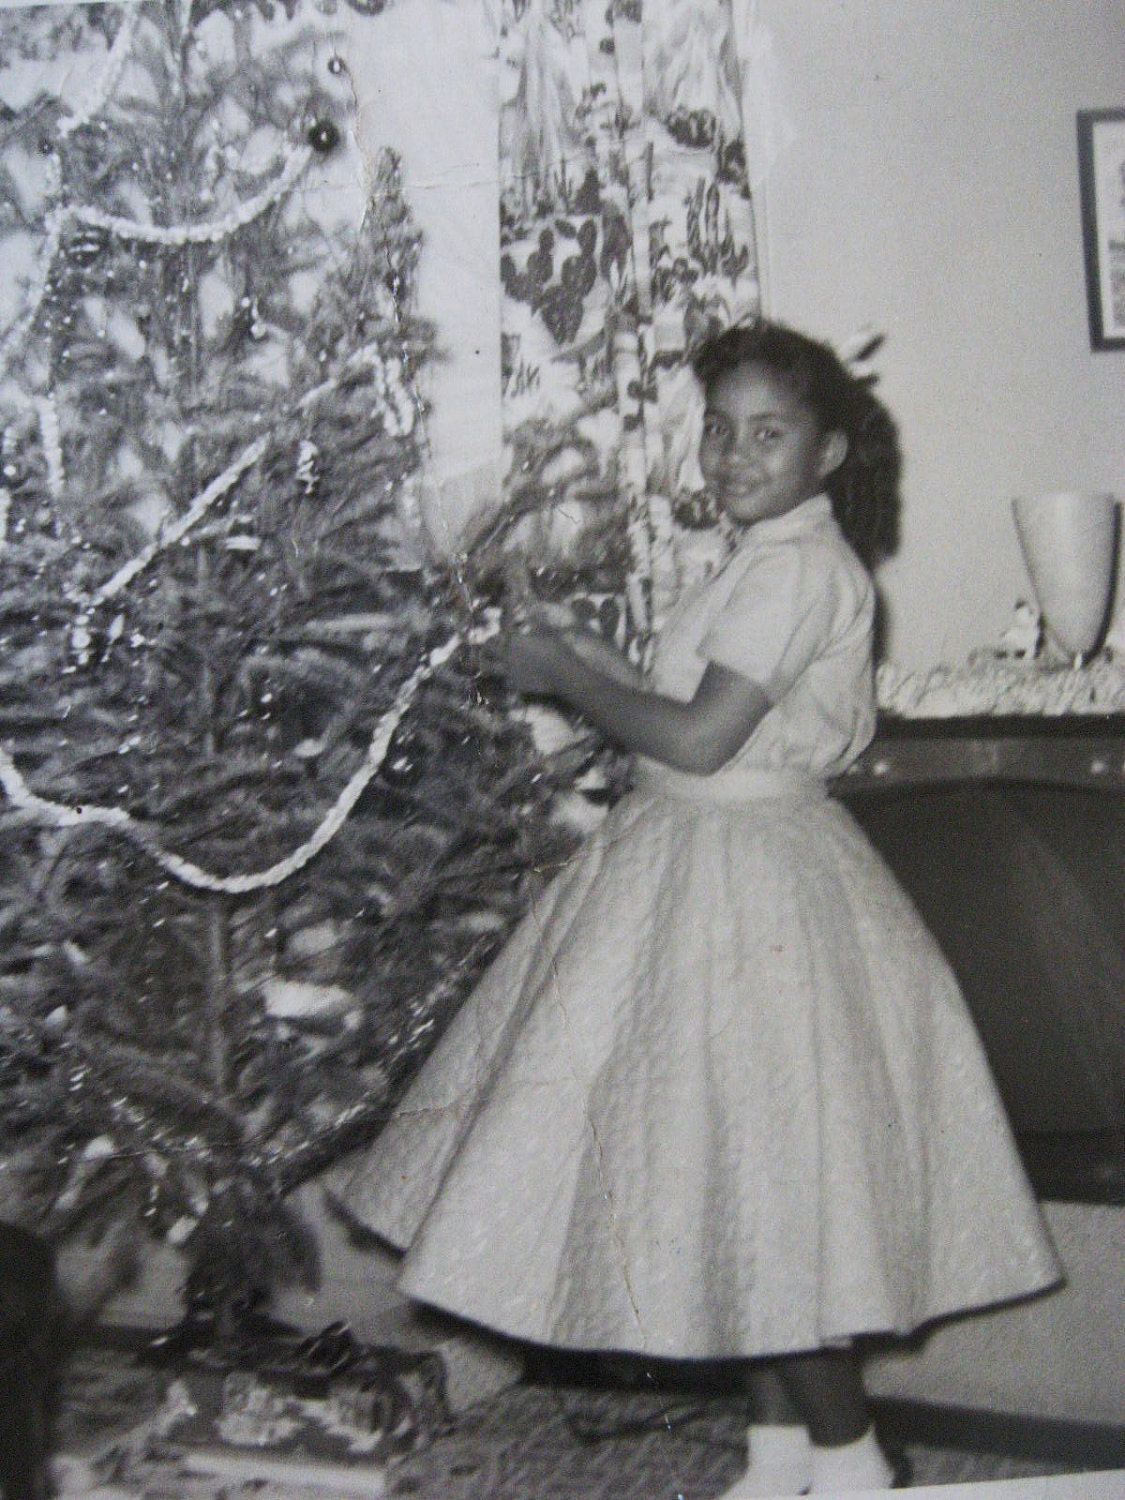 Poodle Skirt by the Christmas Tree. . .1950's Vintage